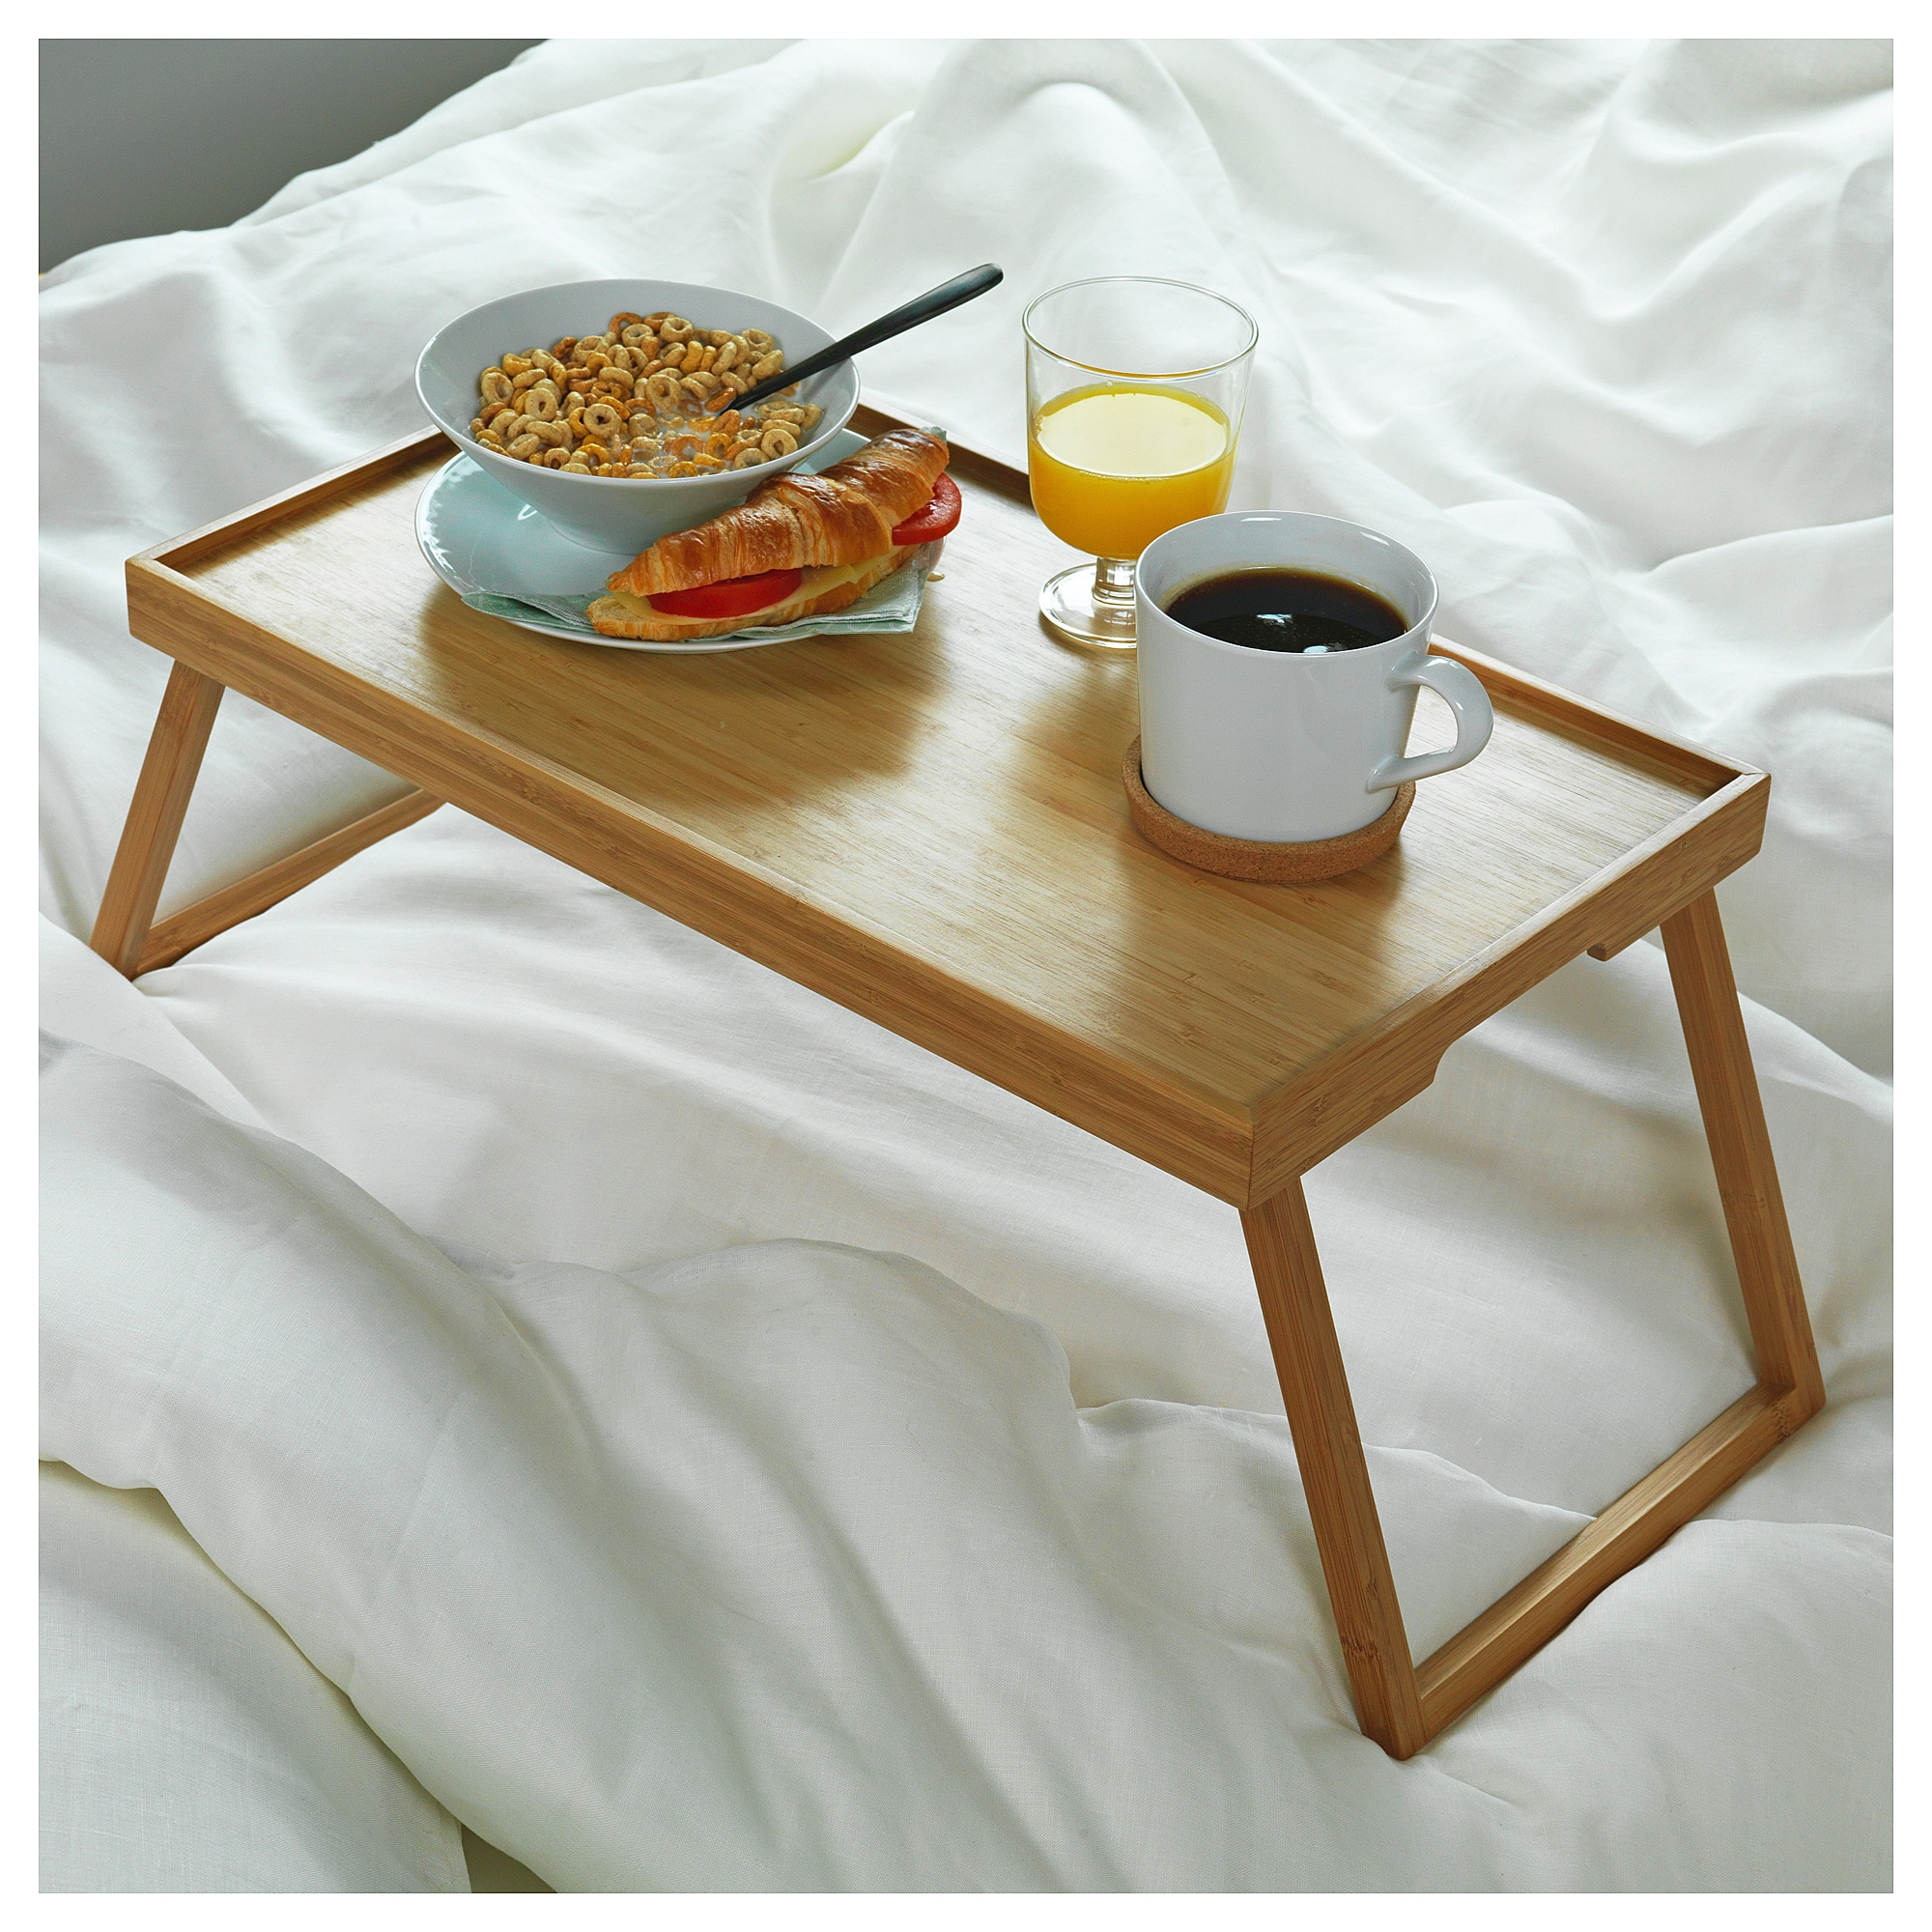 https://www.ikea.com/ie/en/images/products/resgods-bed-tray-bamboo__0684377_PE721130_S5.JPG?f=g